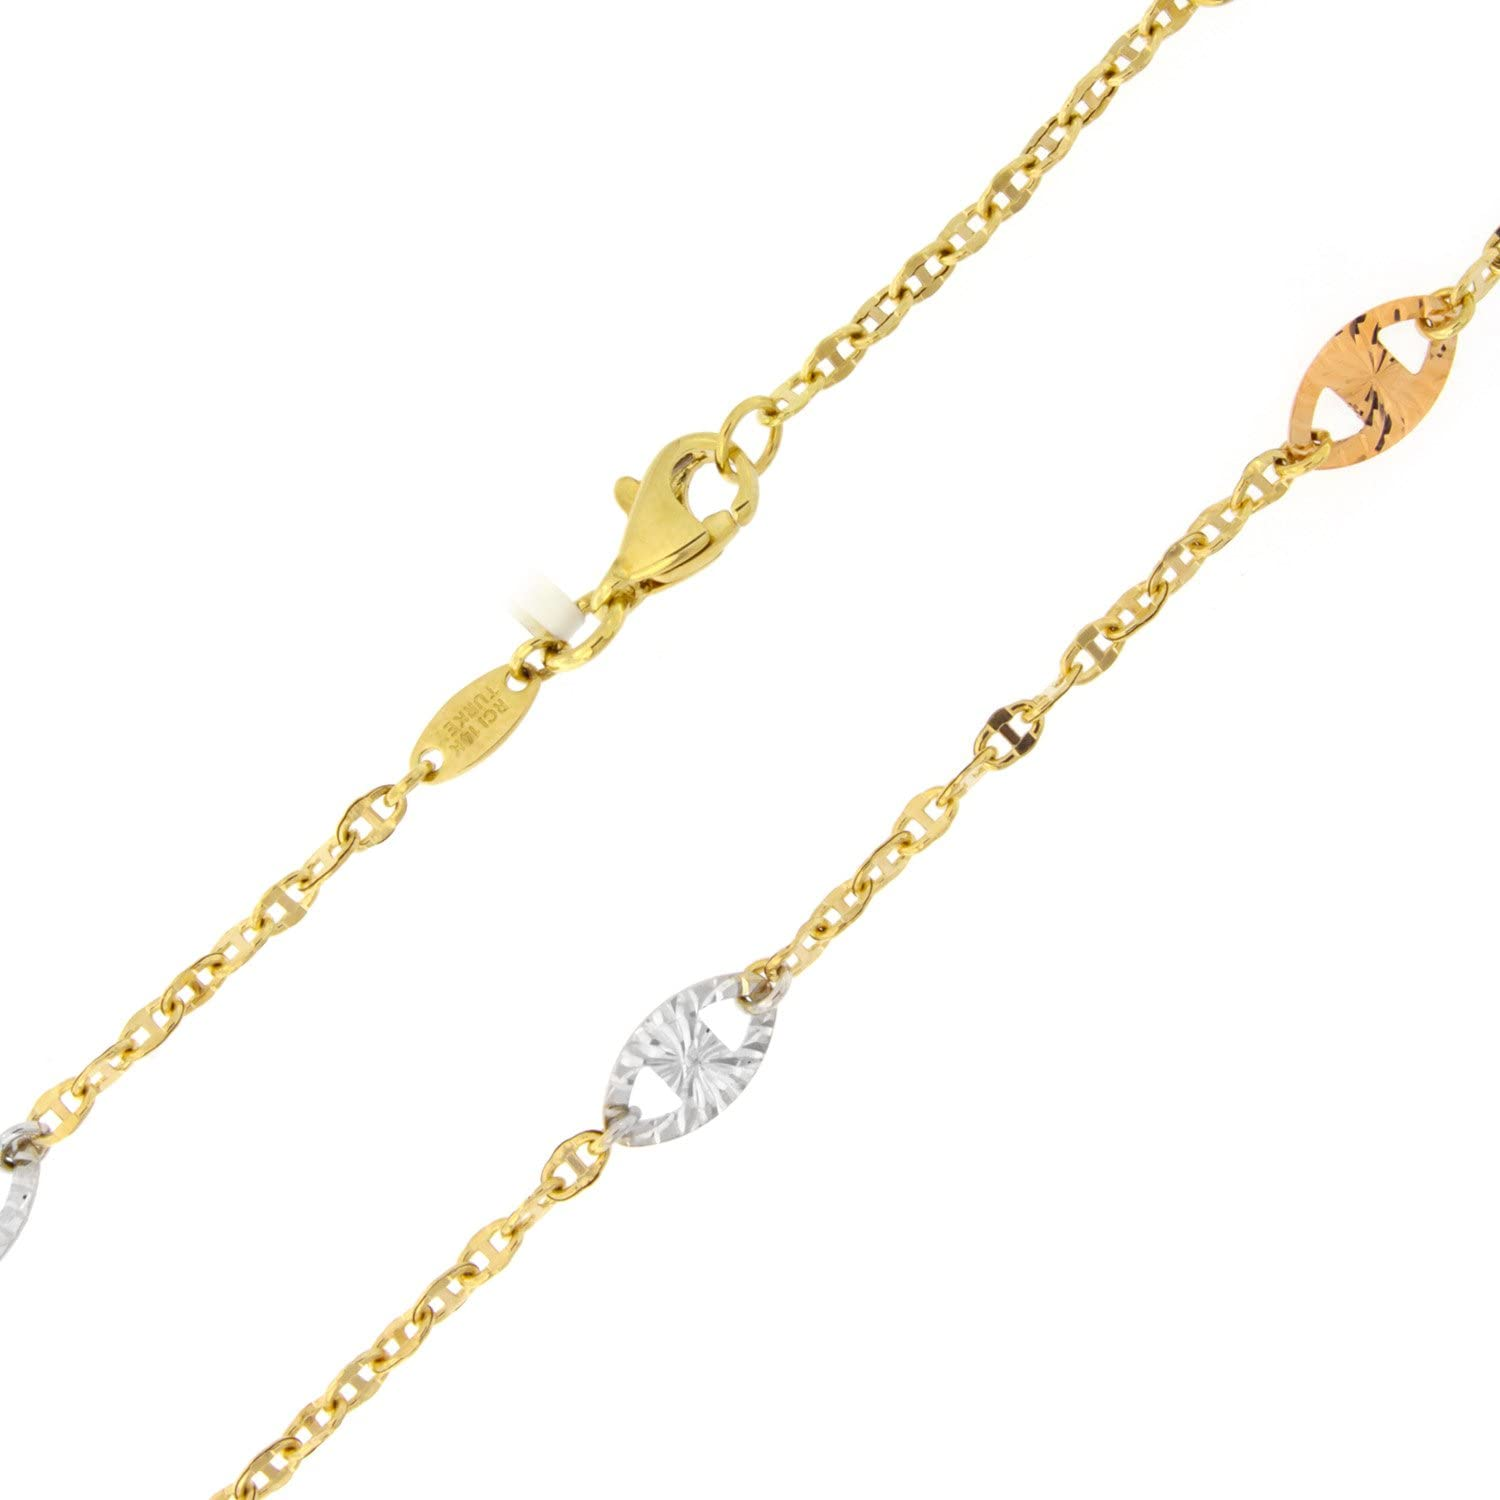 Heart link Chain Anklet Ankle Bracelet Real 14K Yellow White Rose TriColor Gold